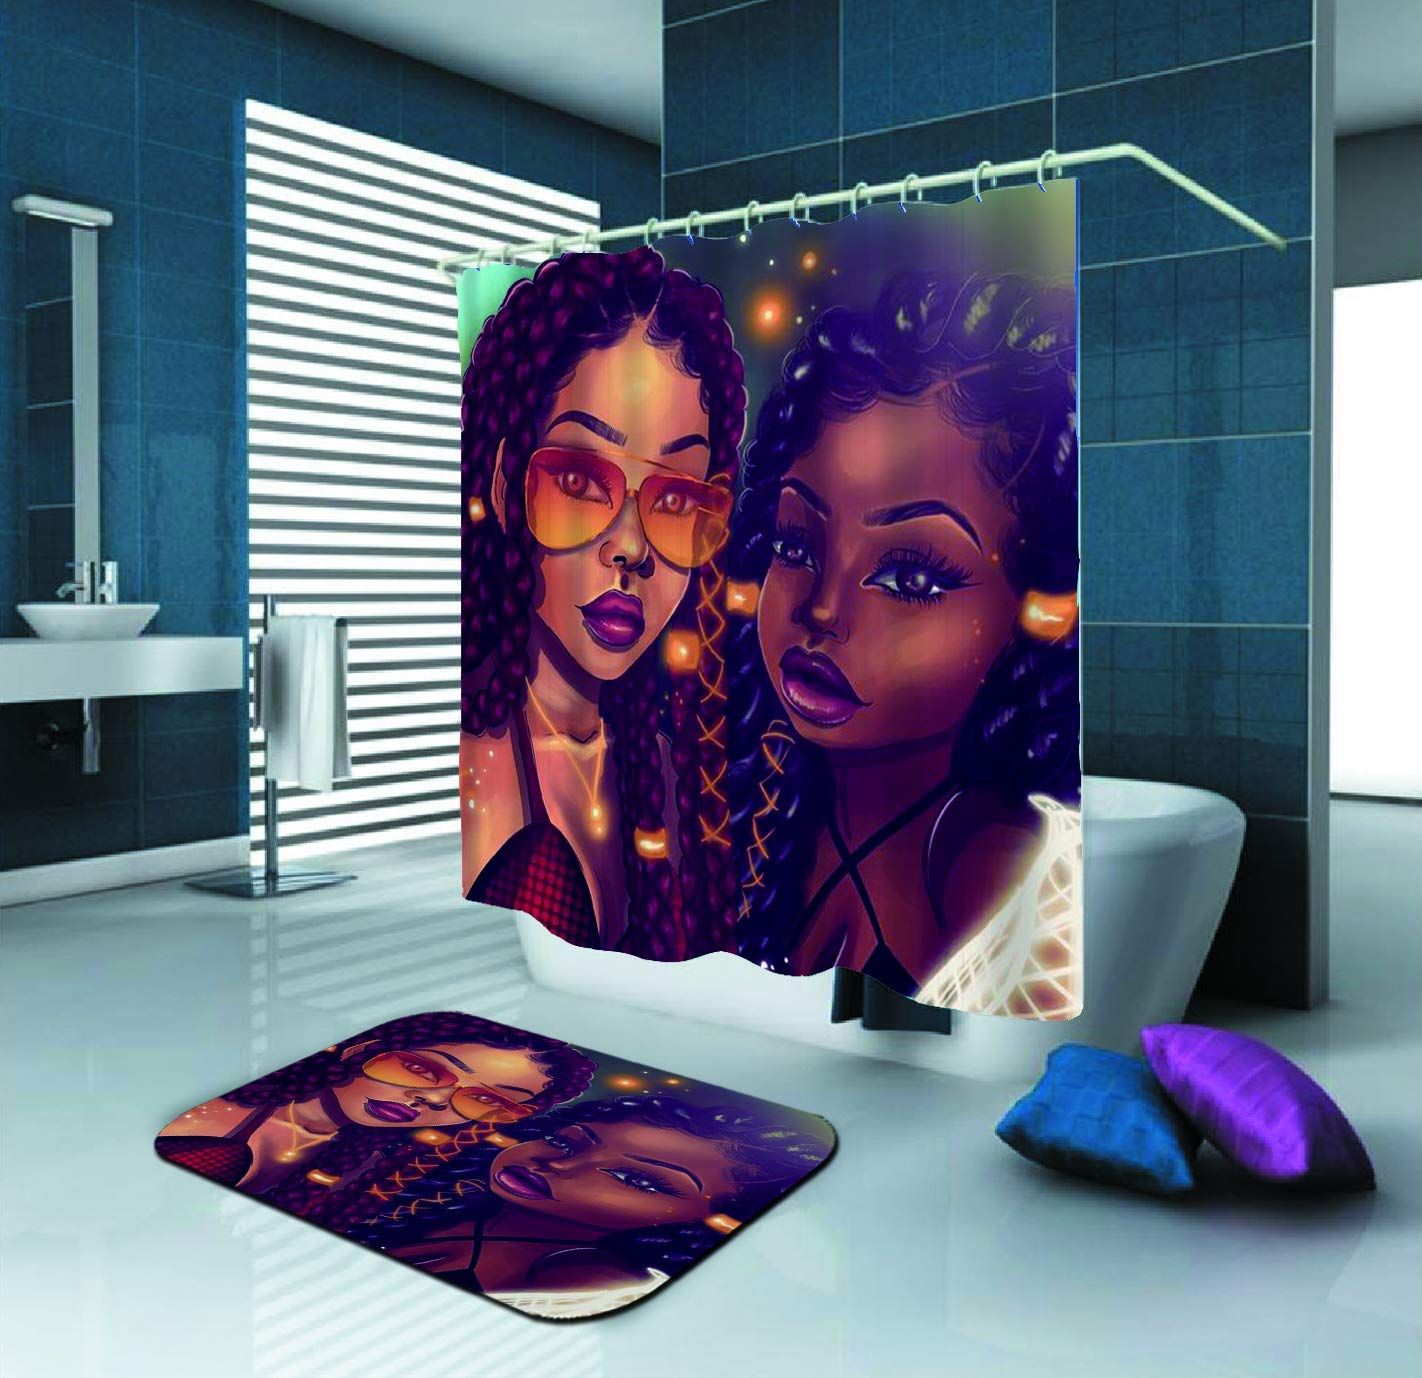 27 99 African American Mom Daughter Afrocentric Shower Curtain Girl Bathroom Decor Girls Shower Curtain African Shower Curtain